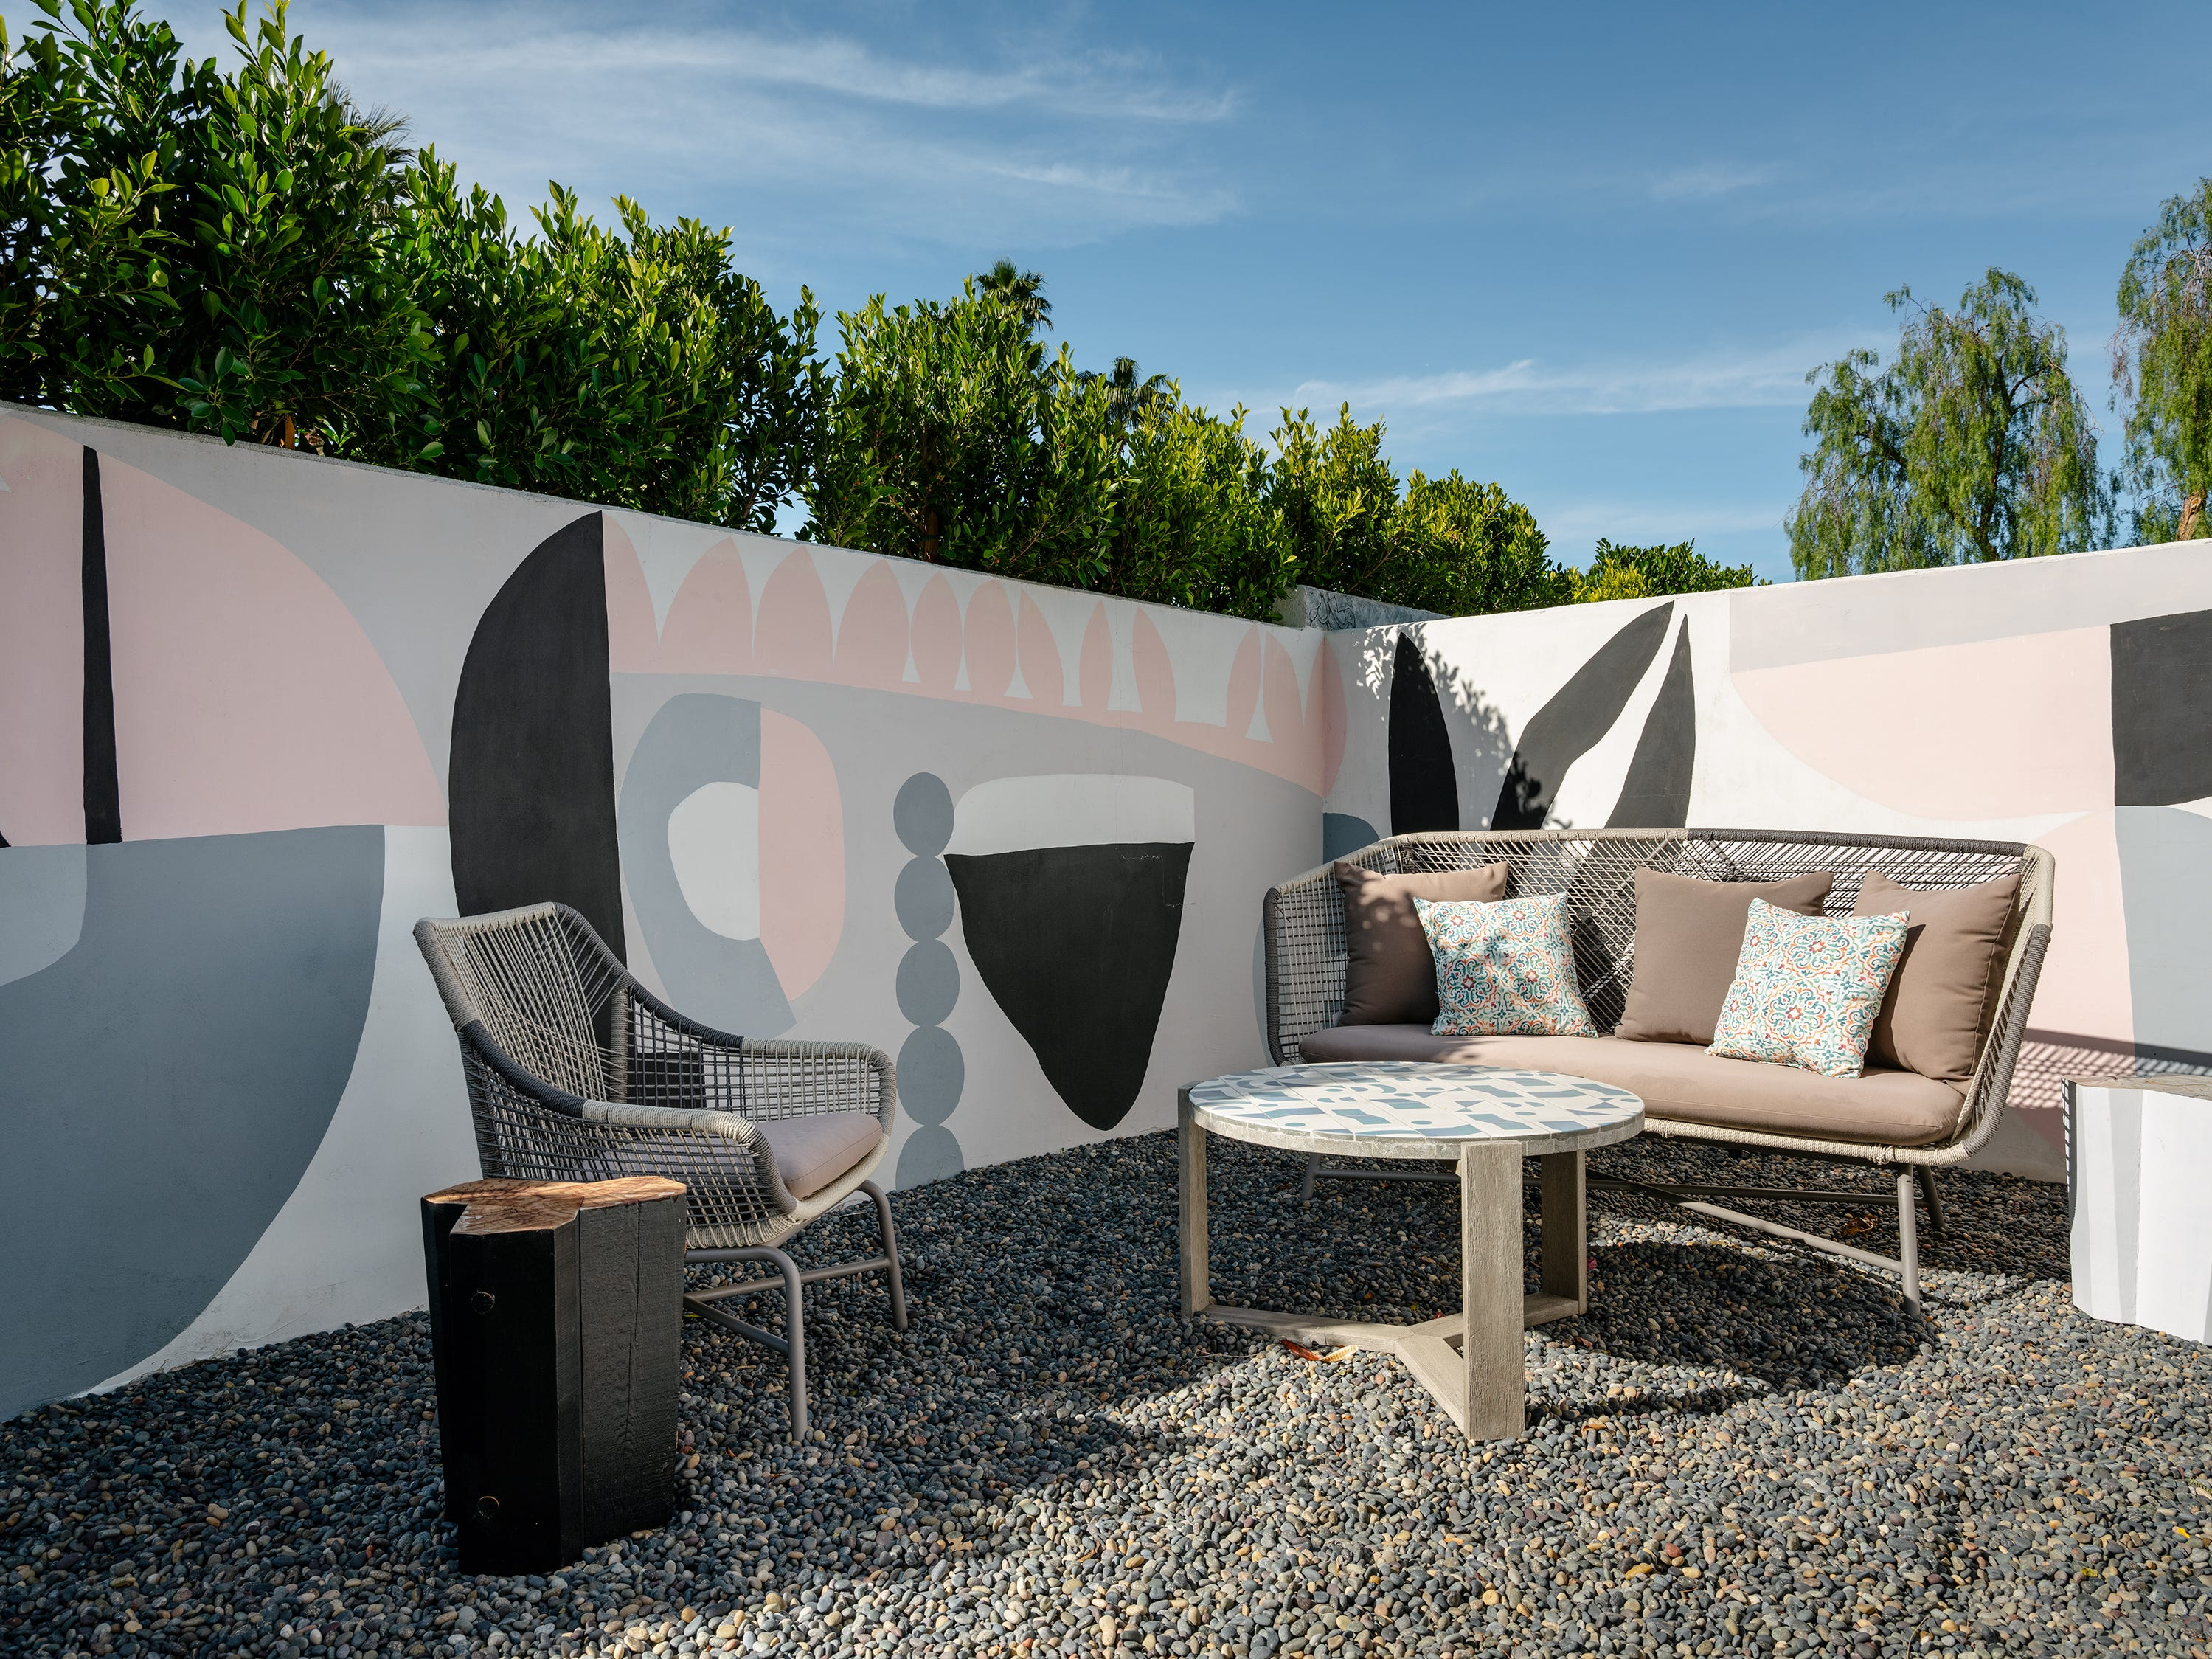 Murals by Shawn Savage and Robert Landry, Jr. adorn the West Elm House, featured during Modernism Week 2018, in Palm Springs.